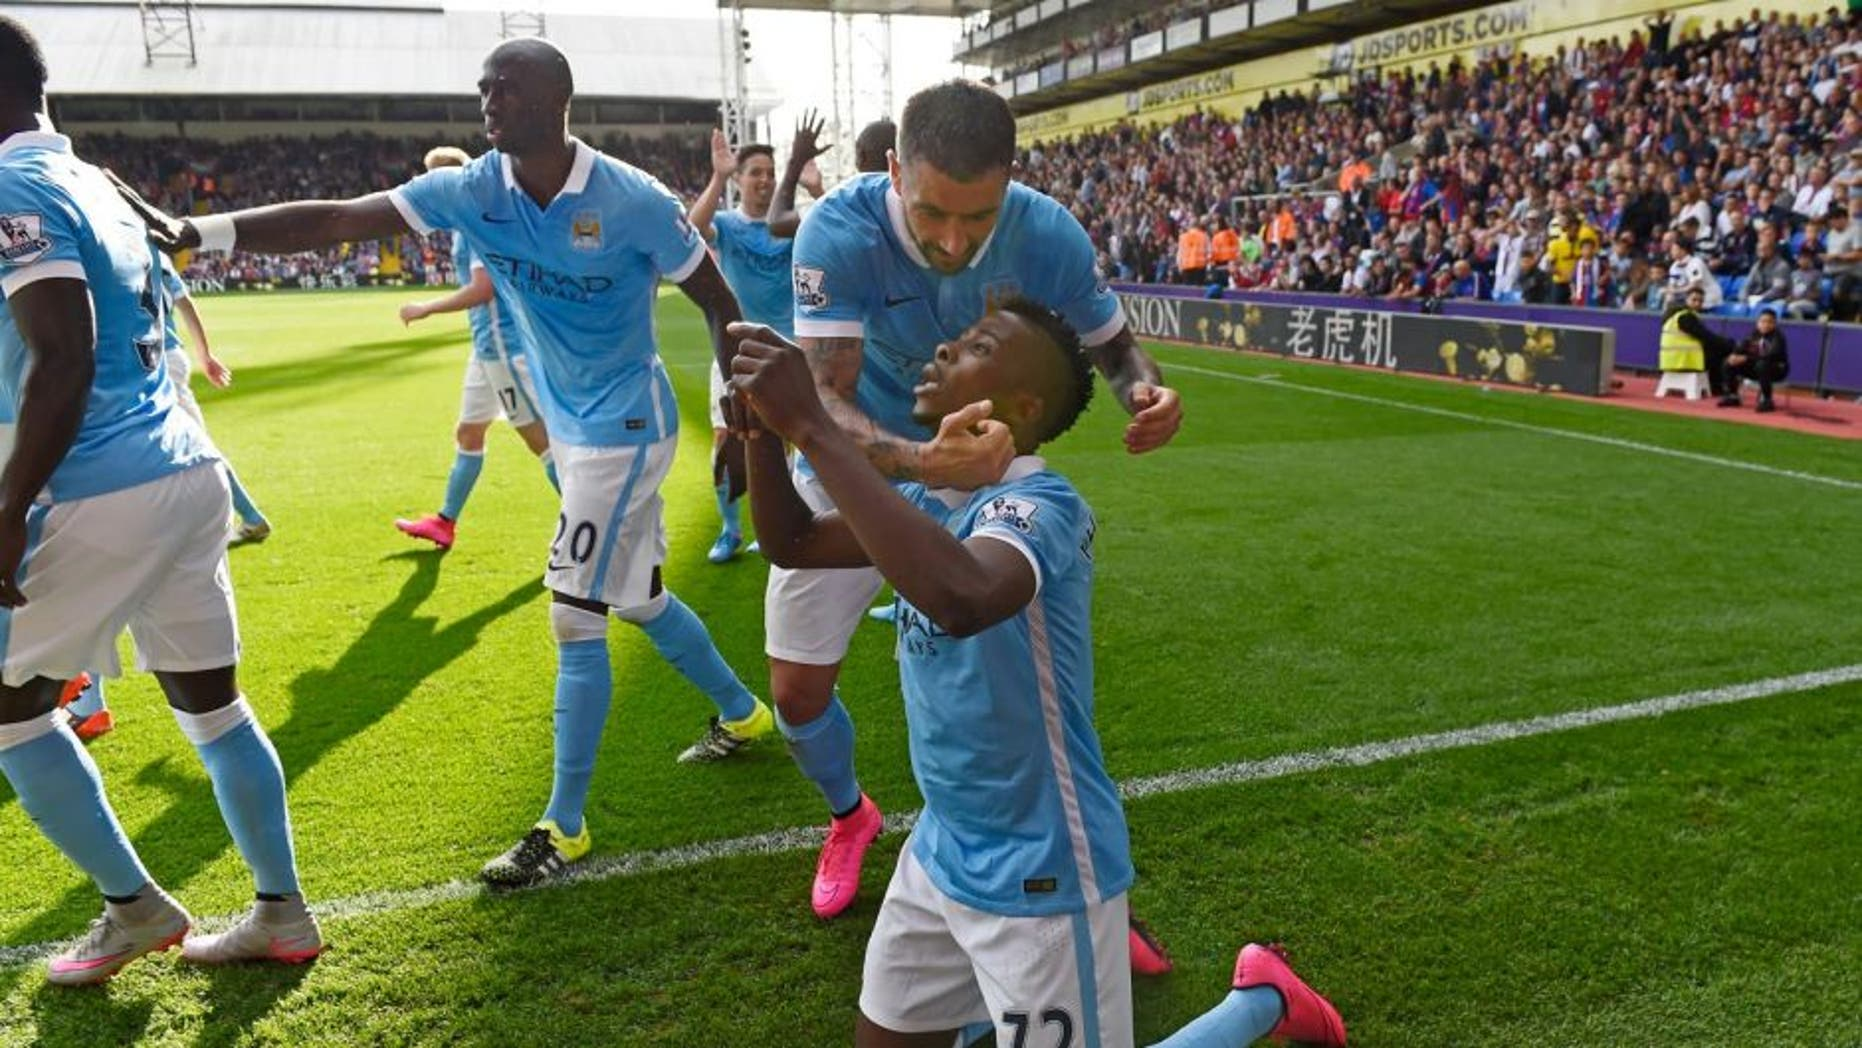 LONDON, ENGLAND - SEPTEMBER 12: Kelechi Iheanacho of Manchester City celebrates scoring his team's opening goal during the Barclays Premier League match between Crystal Palace and Manchester City at Selhurst Park on September 12, 2015 in London, United Kingdom. (Photo by Mike Hewitt/Getty Images)